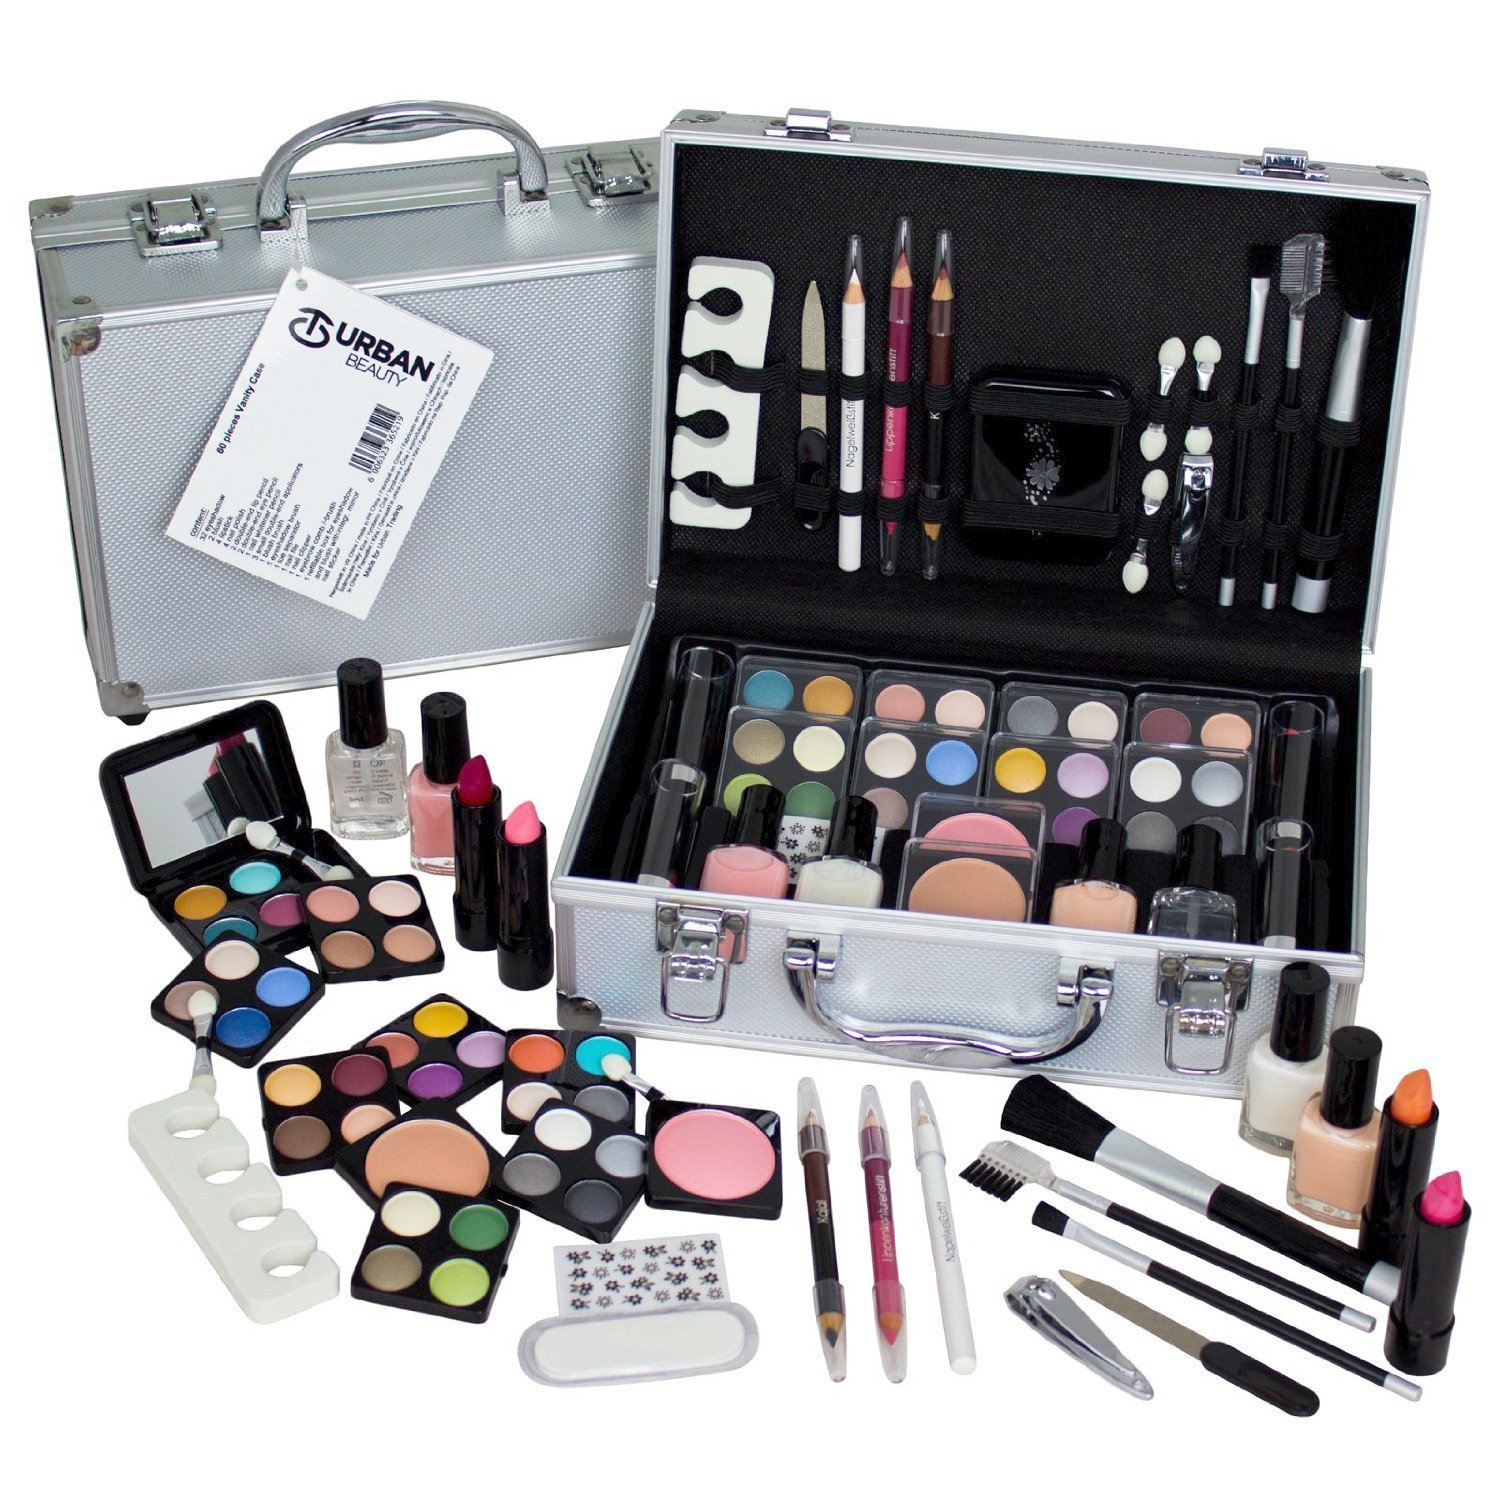 Urban Beauty vanity case